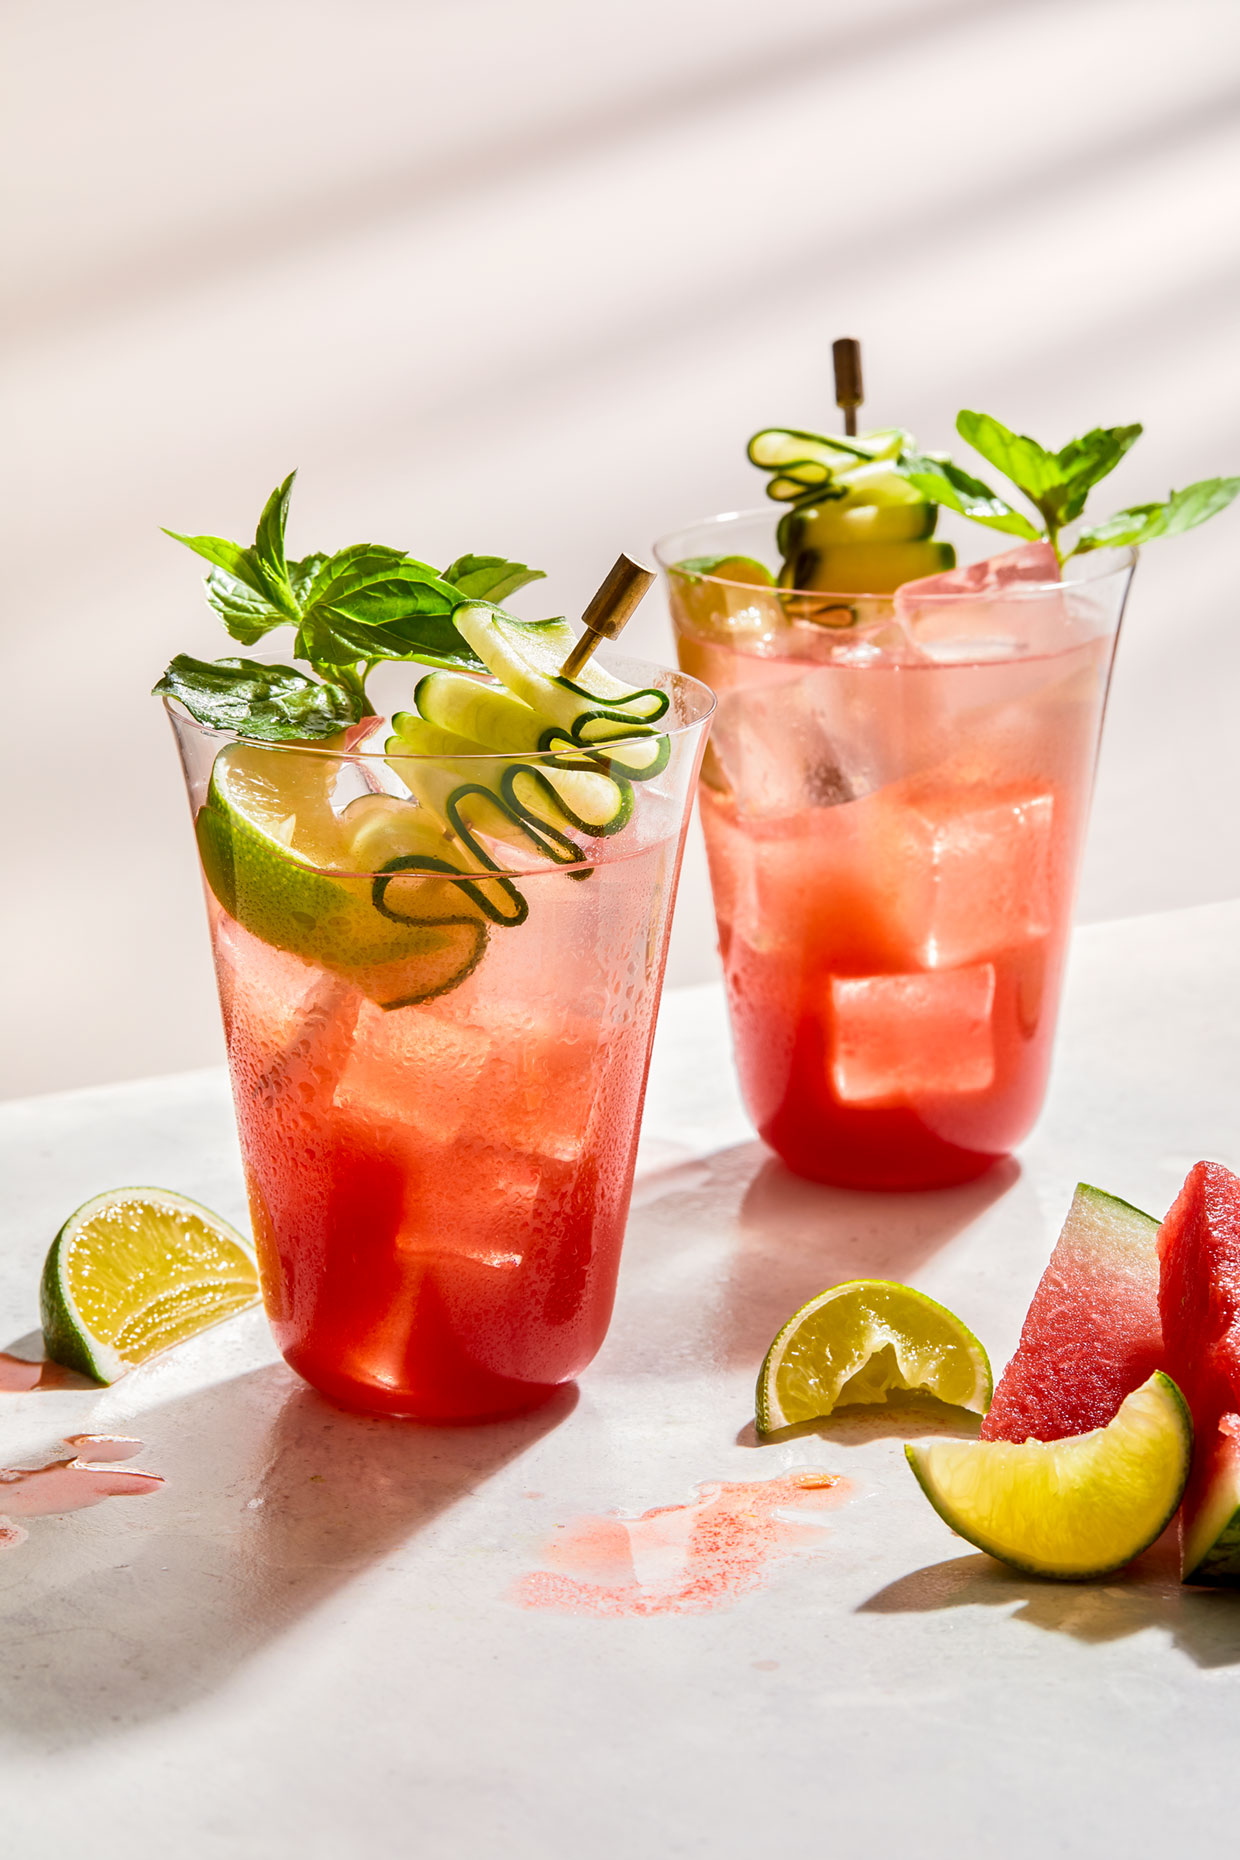 Watermelon cocktail by Teri Lyn Fisher a Los Angeles photgrapher